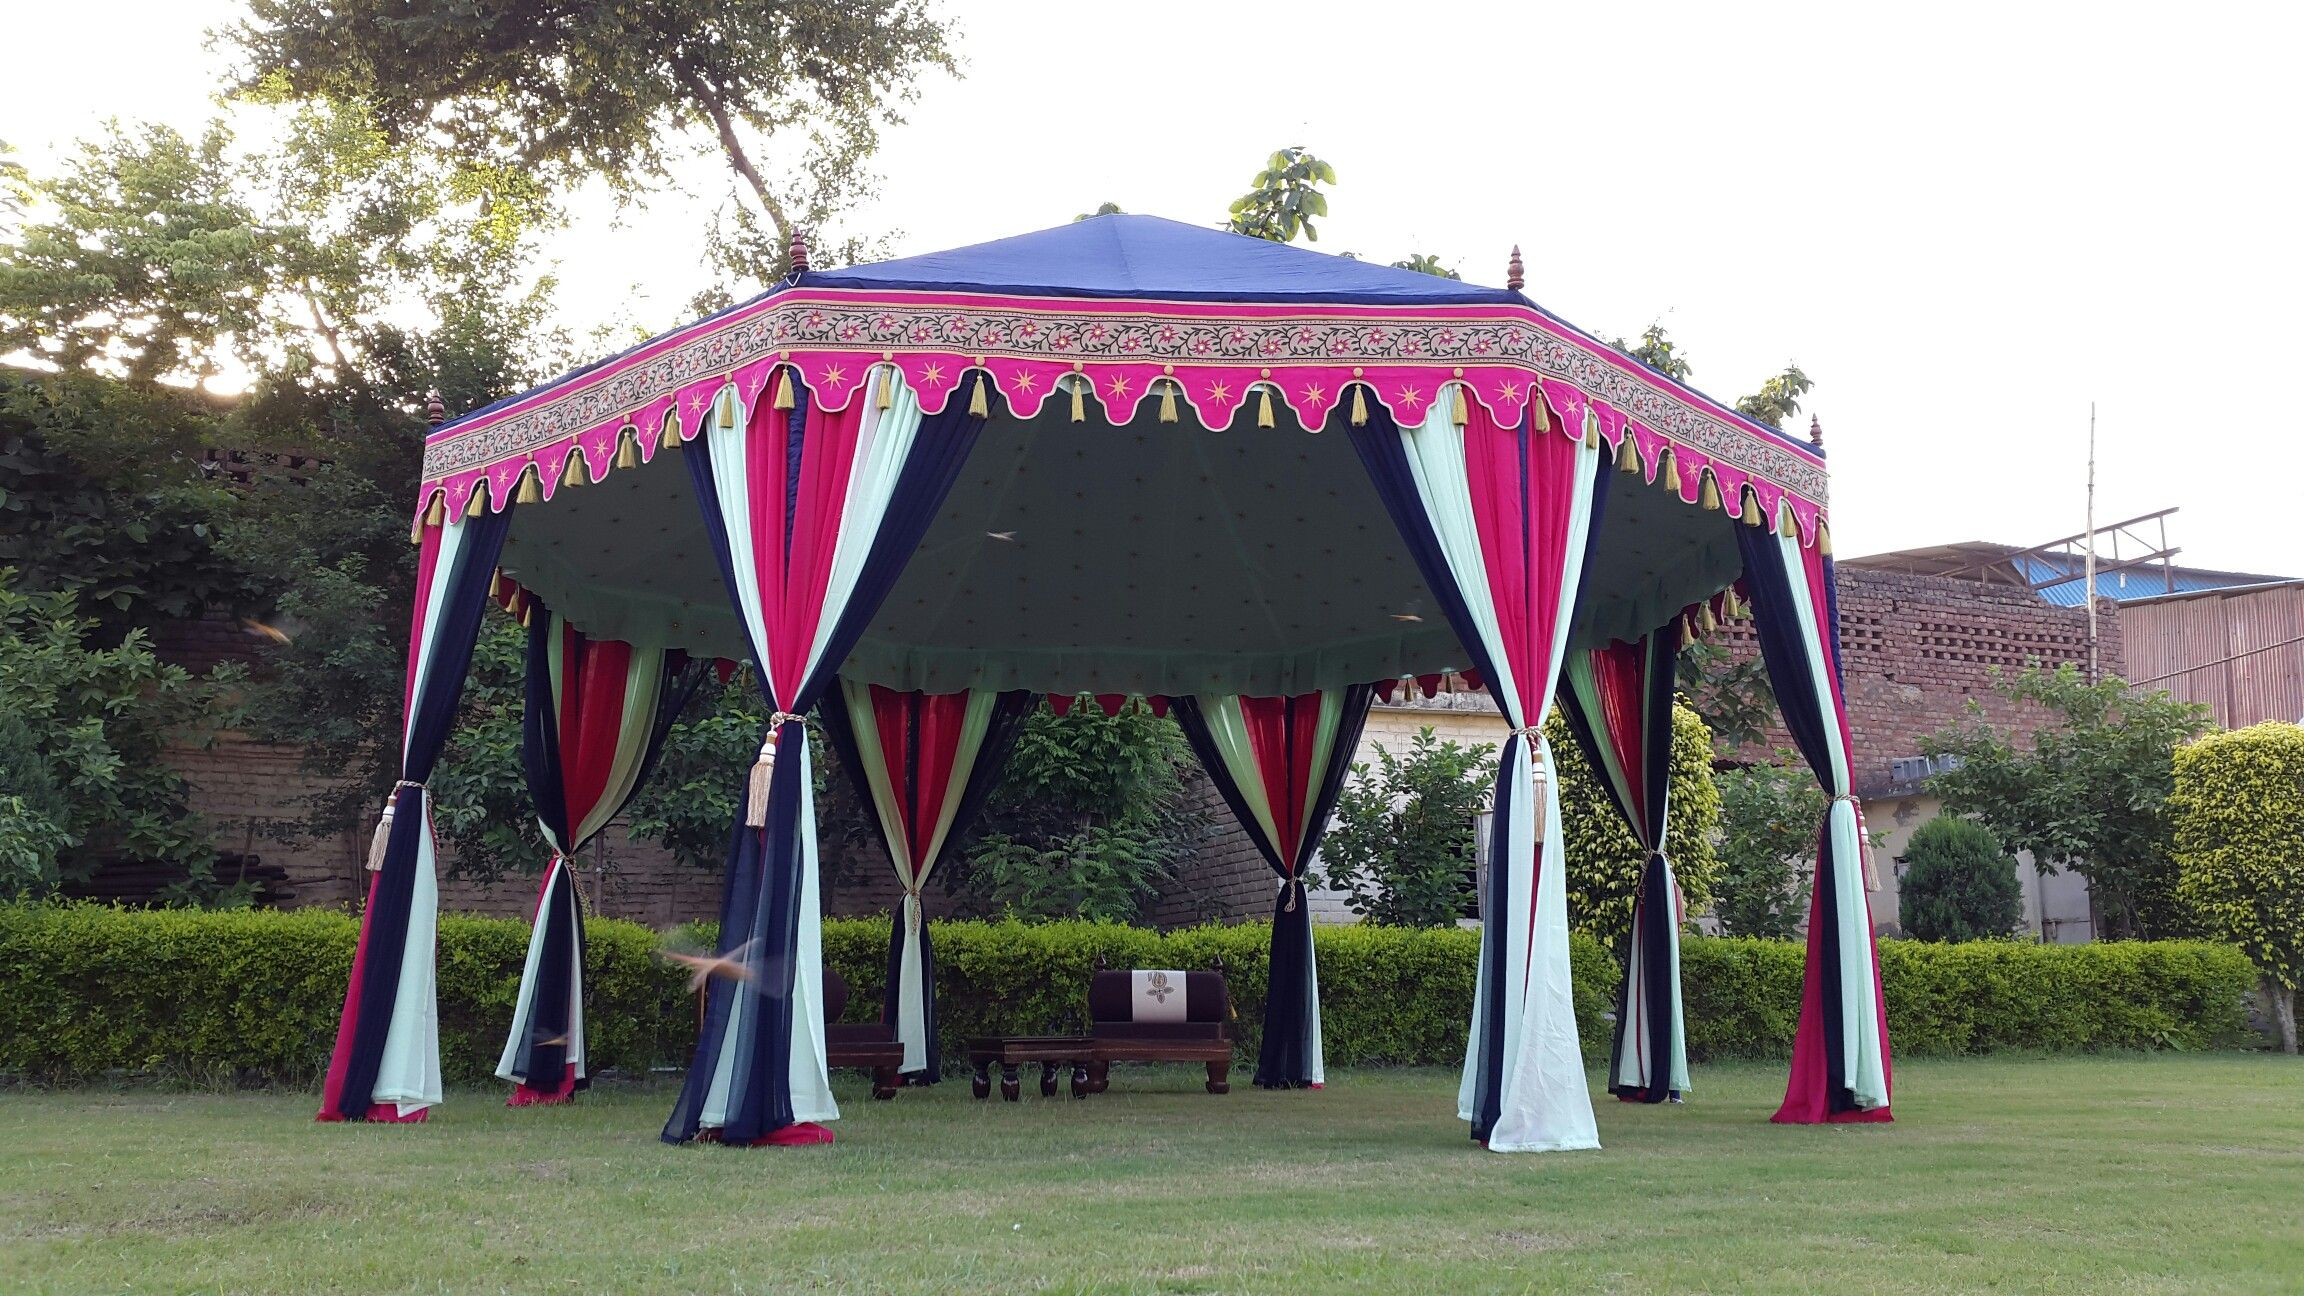 Indian Pavilion Tents Best Tent 2017 & Indian Tents Synonym - Best Tent 2018